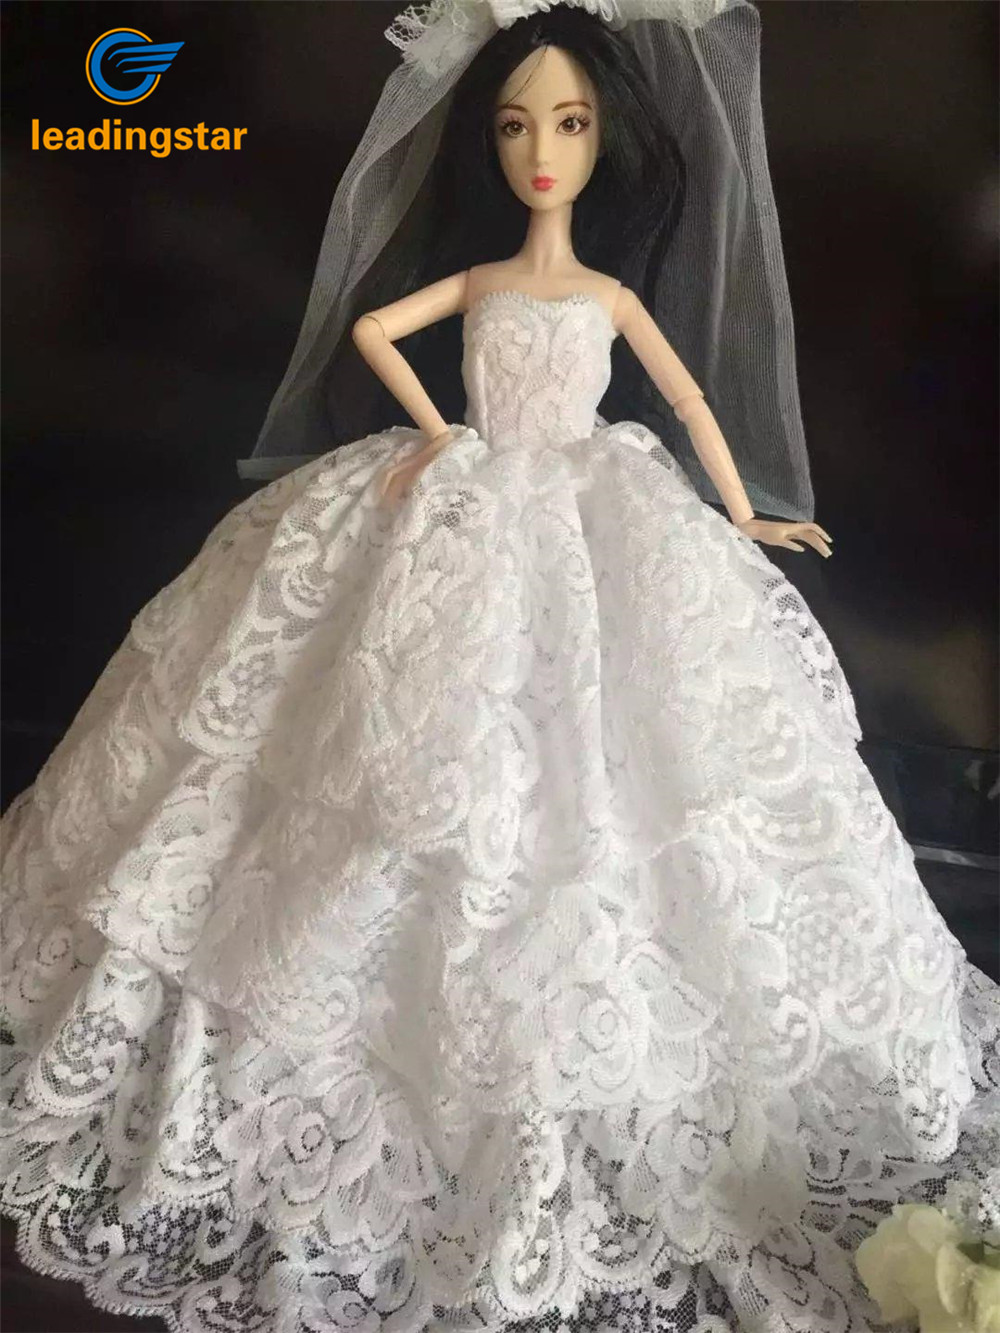 Compare Prices on Barbie Bridal Gown- Online Shopping/Buy Low ...